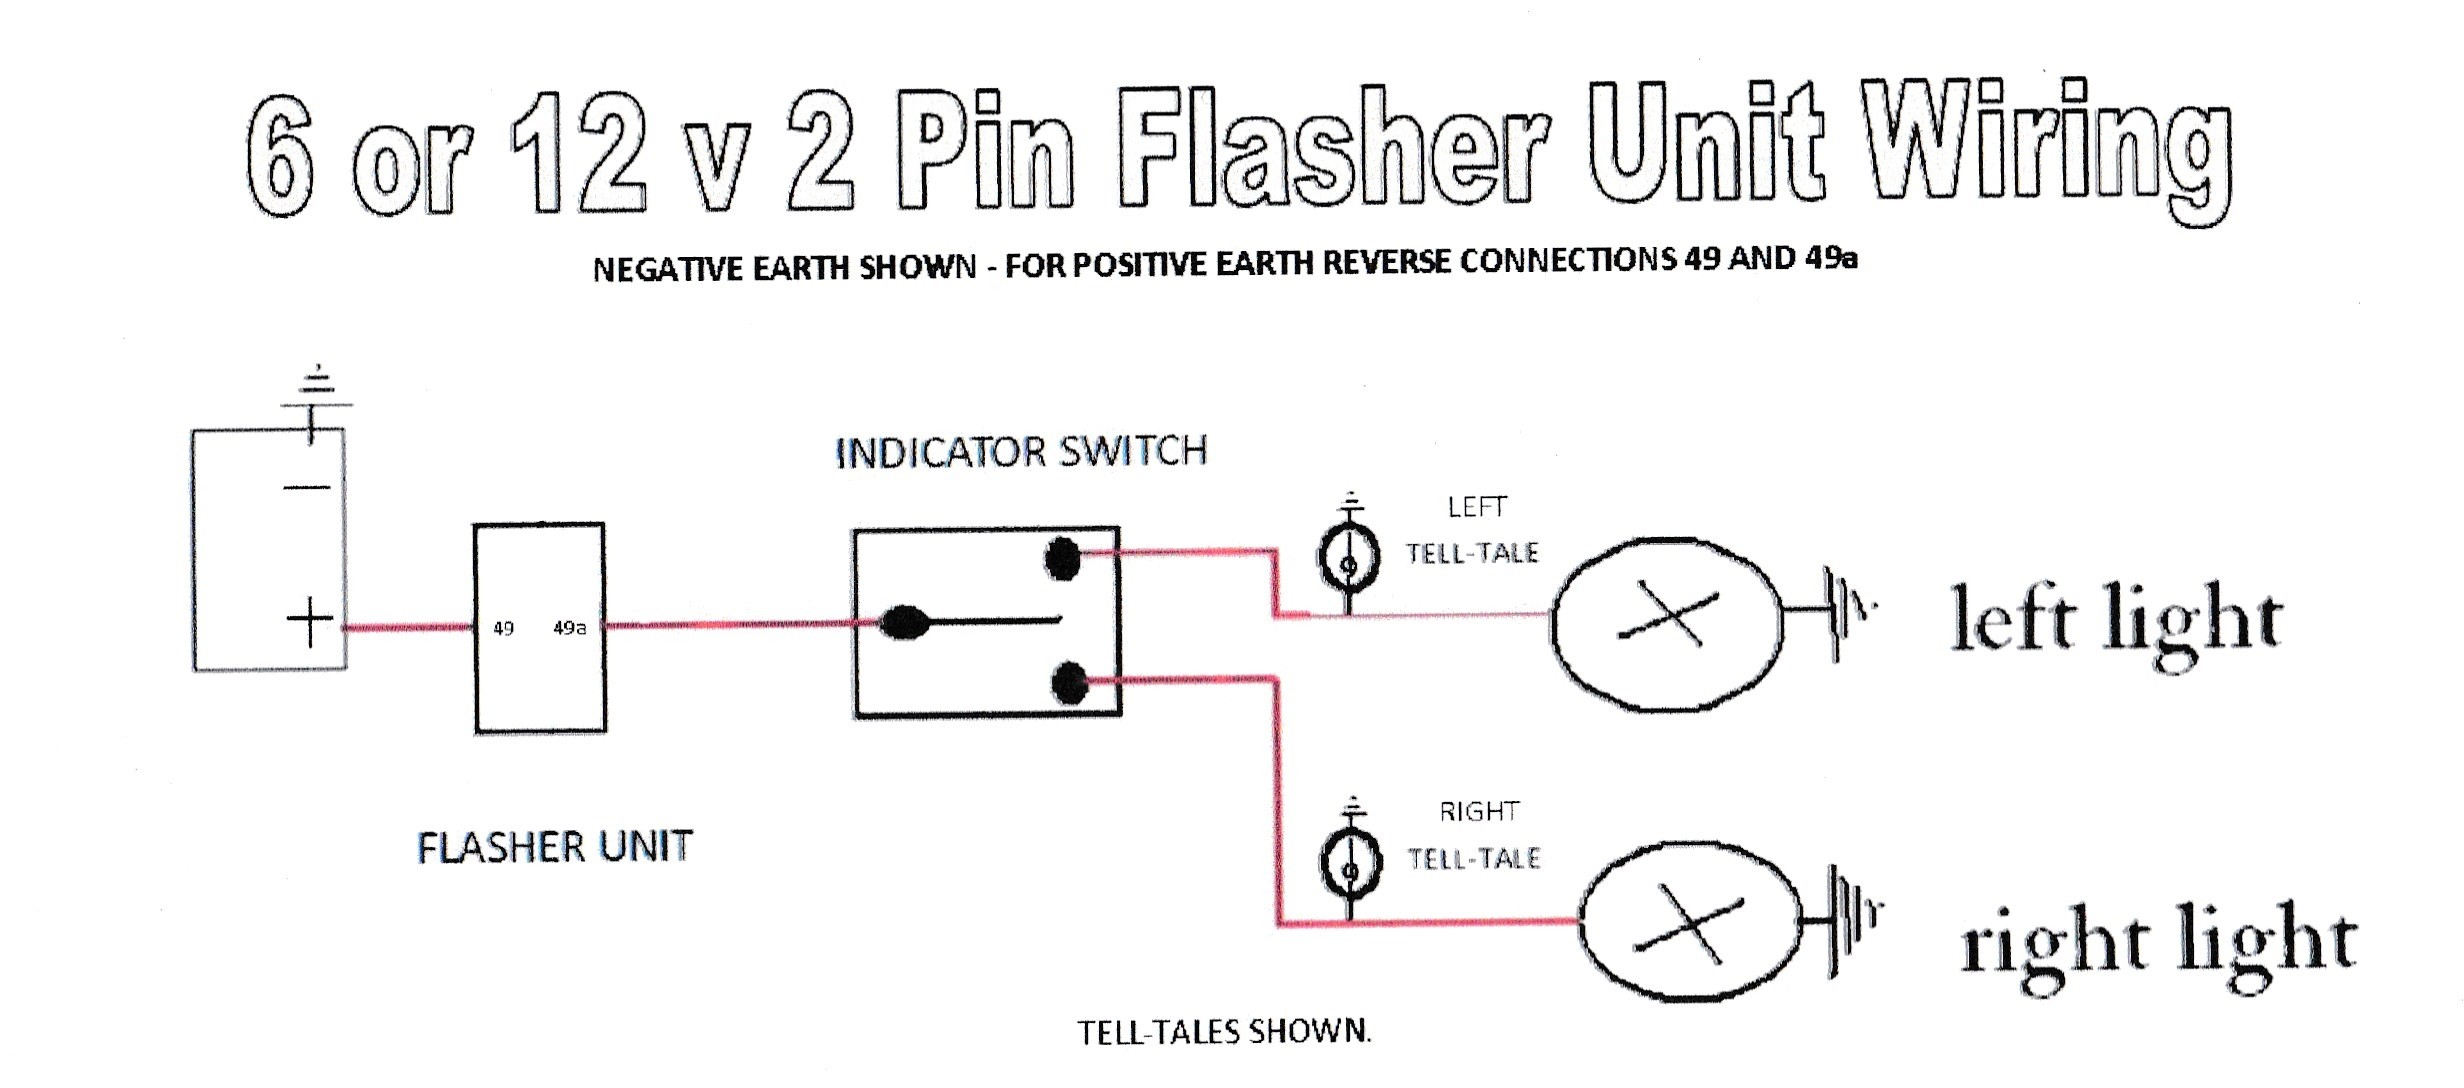 Flasher Relay Wiring Diagram 1 with 2 Pin Flasher Relay Wiring Diagram Wiring Diagram Of Flasher Relay Wiring Diagram